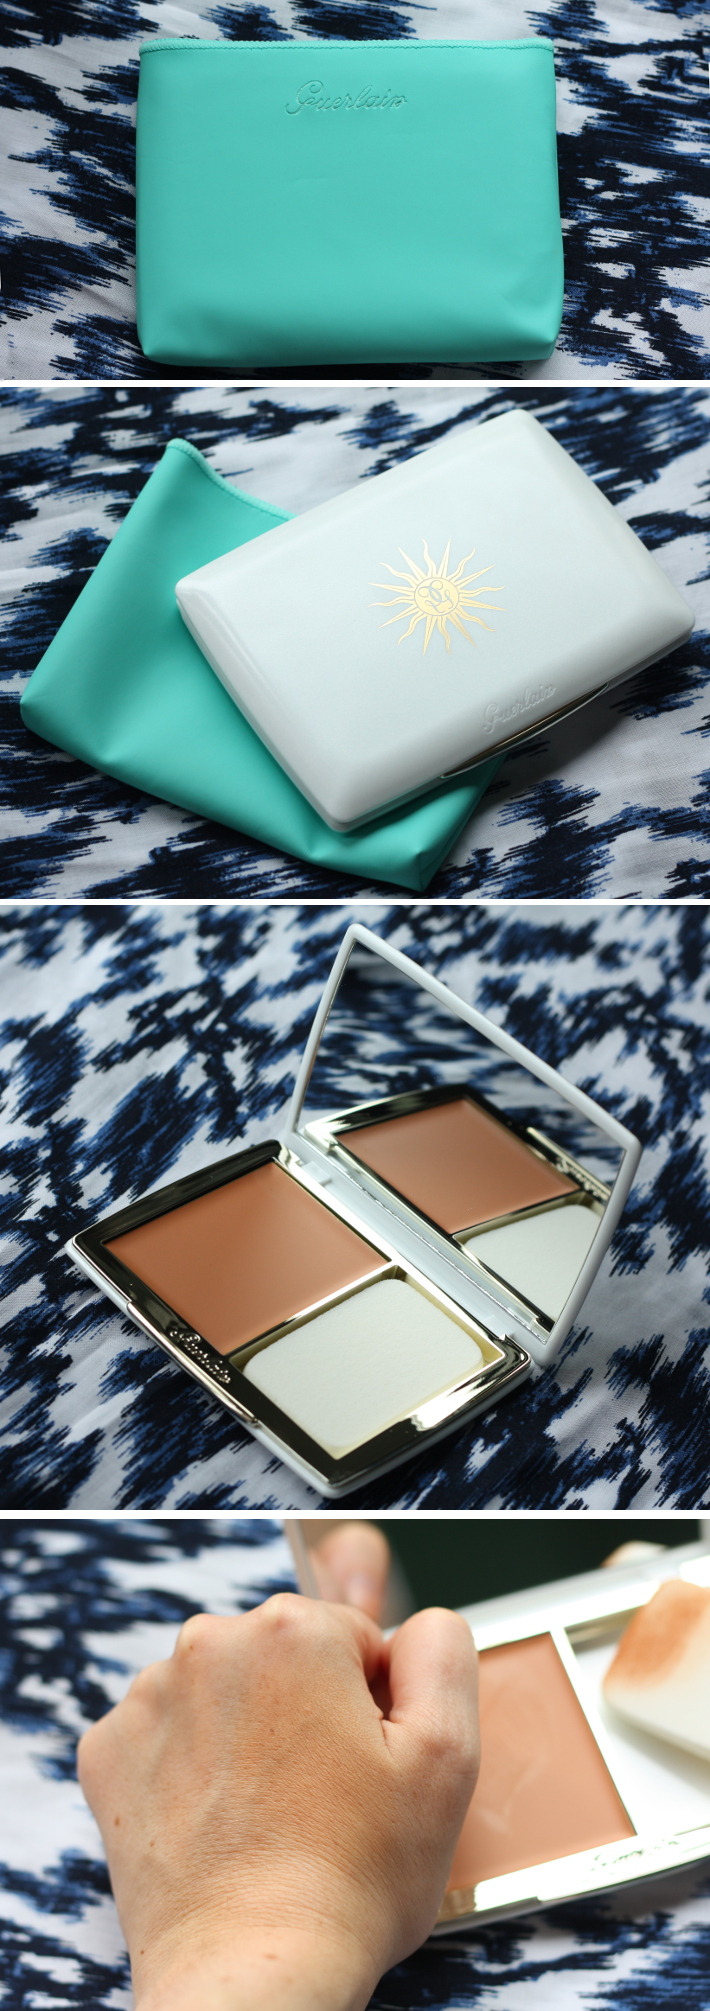 beauty: Guerlain Terracotta sun protection compact foundation in Sand: review and swatches